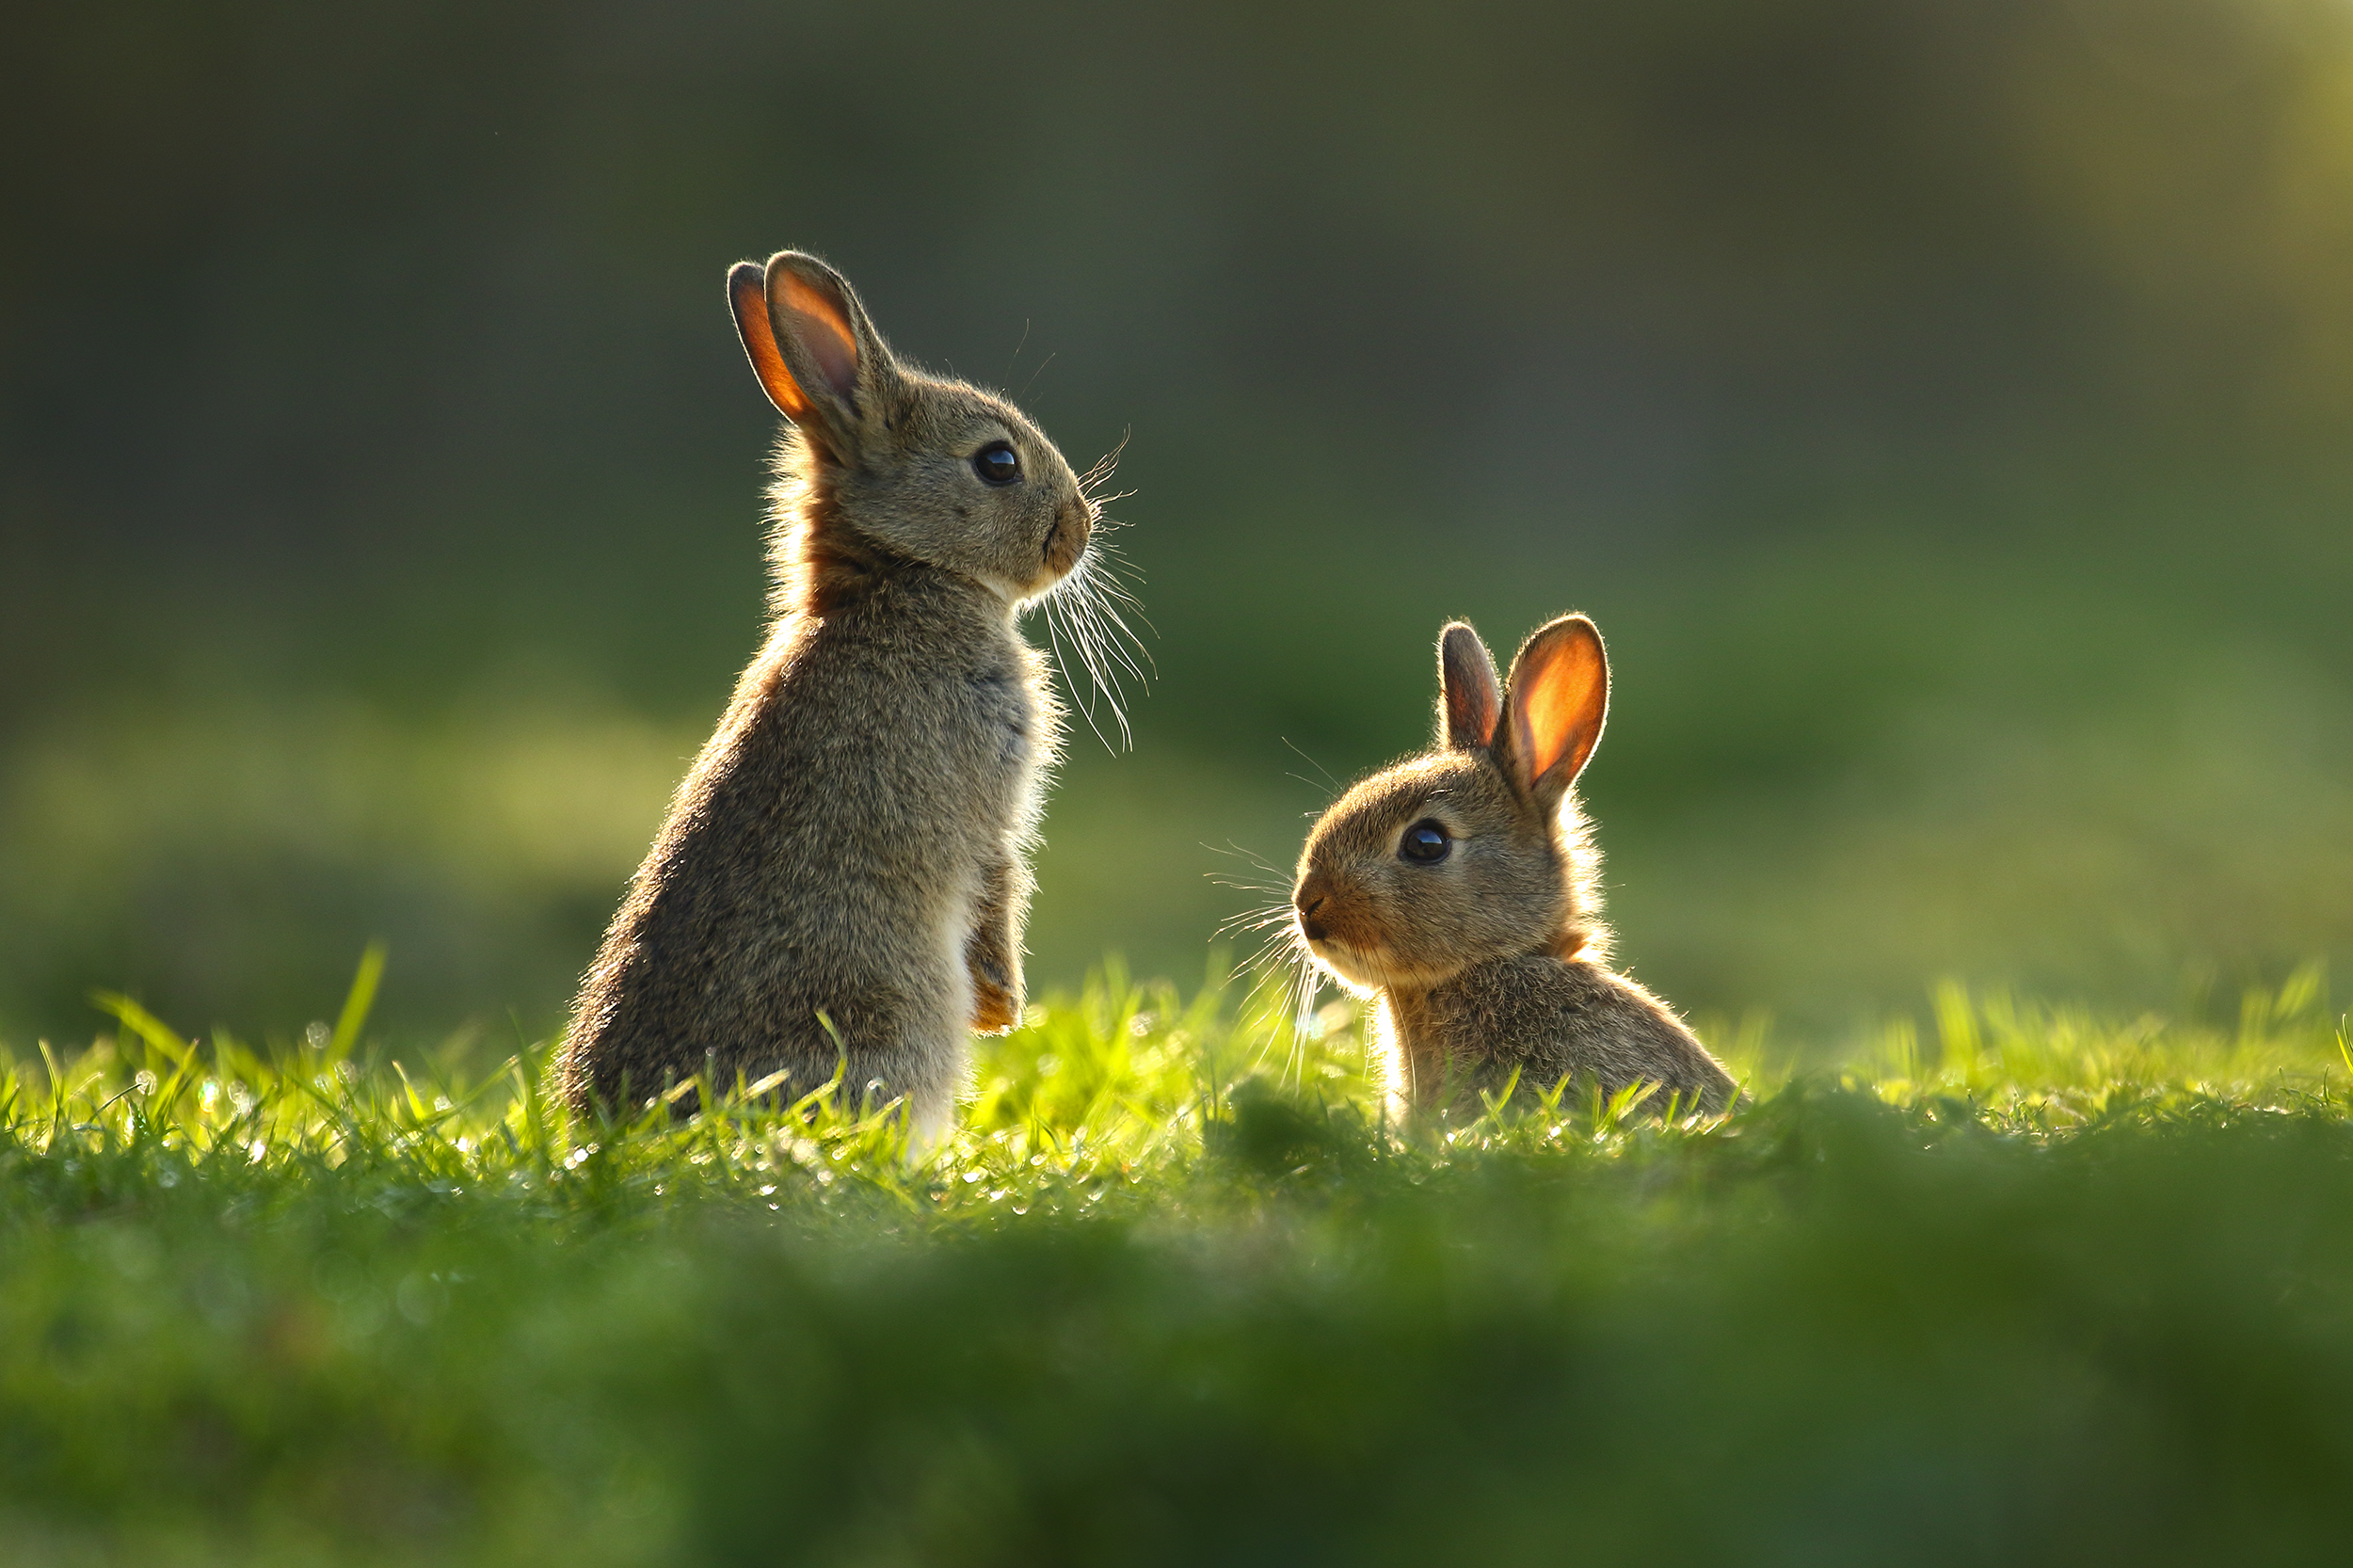 backlit, bunnies, rabbits, simon, roy, photography, juvenile, spring, easter, Yorkshire, wild